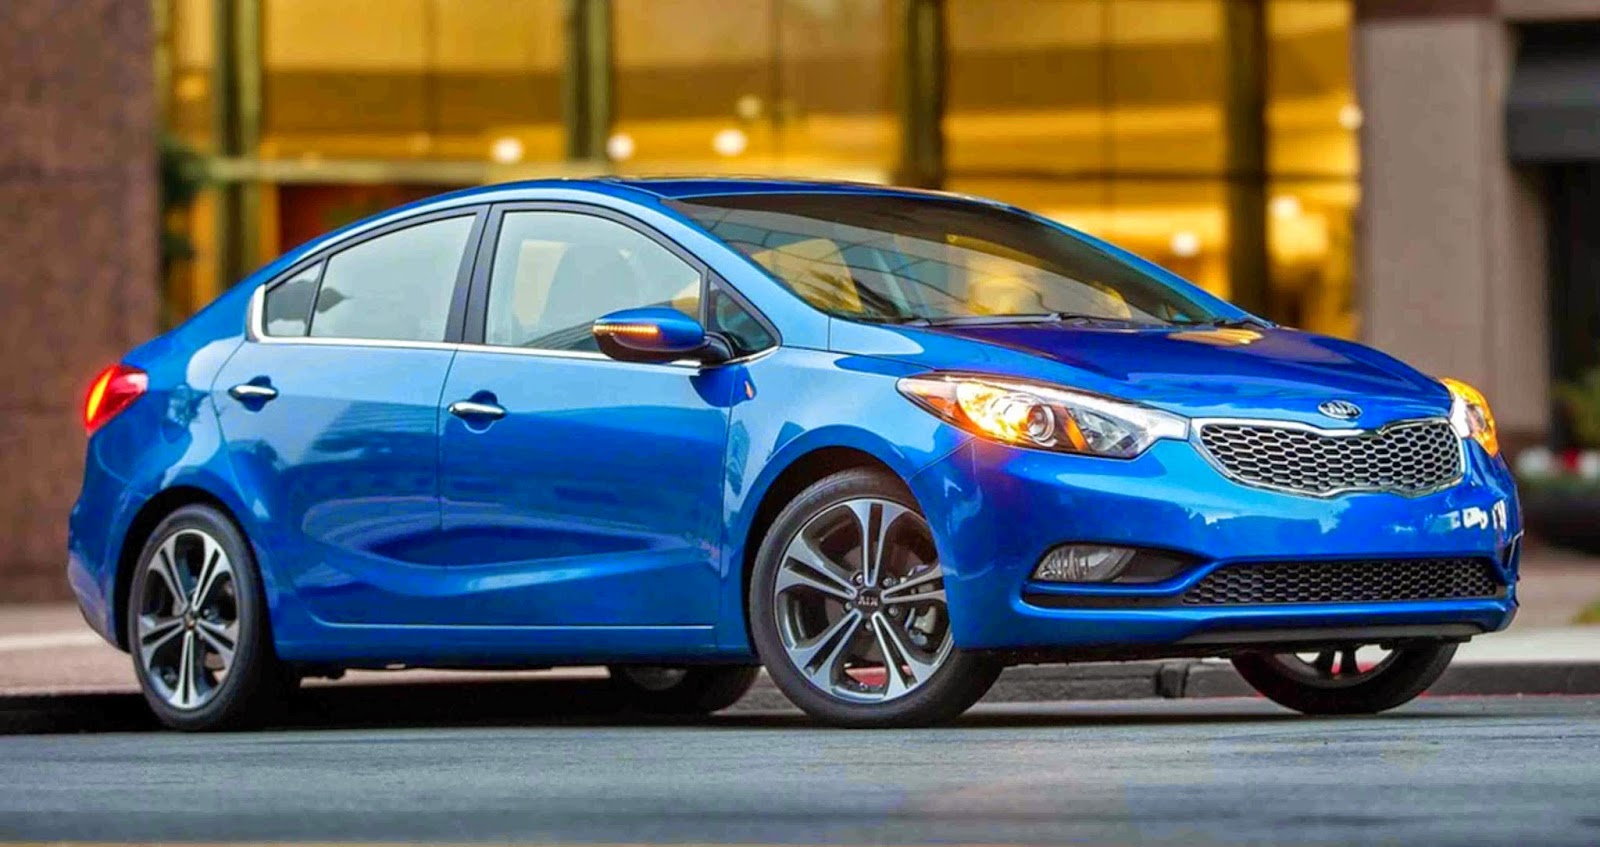 2017 kia forte sedan specs review cars news and spesification. Black Bedroom Furniture Sets. Home Design Ideas